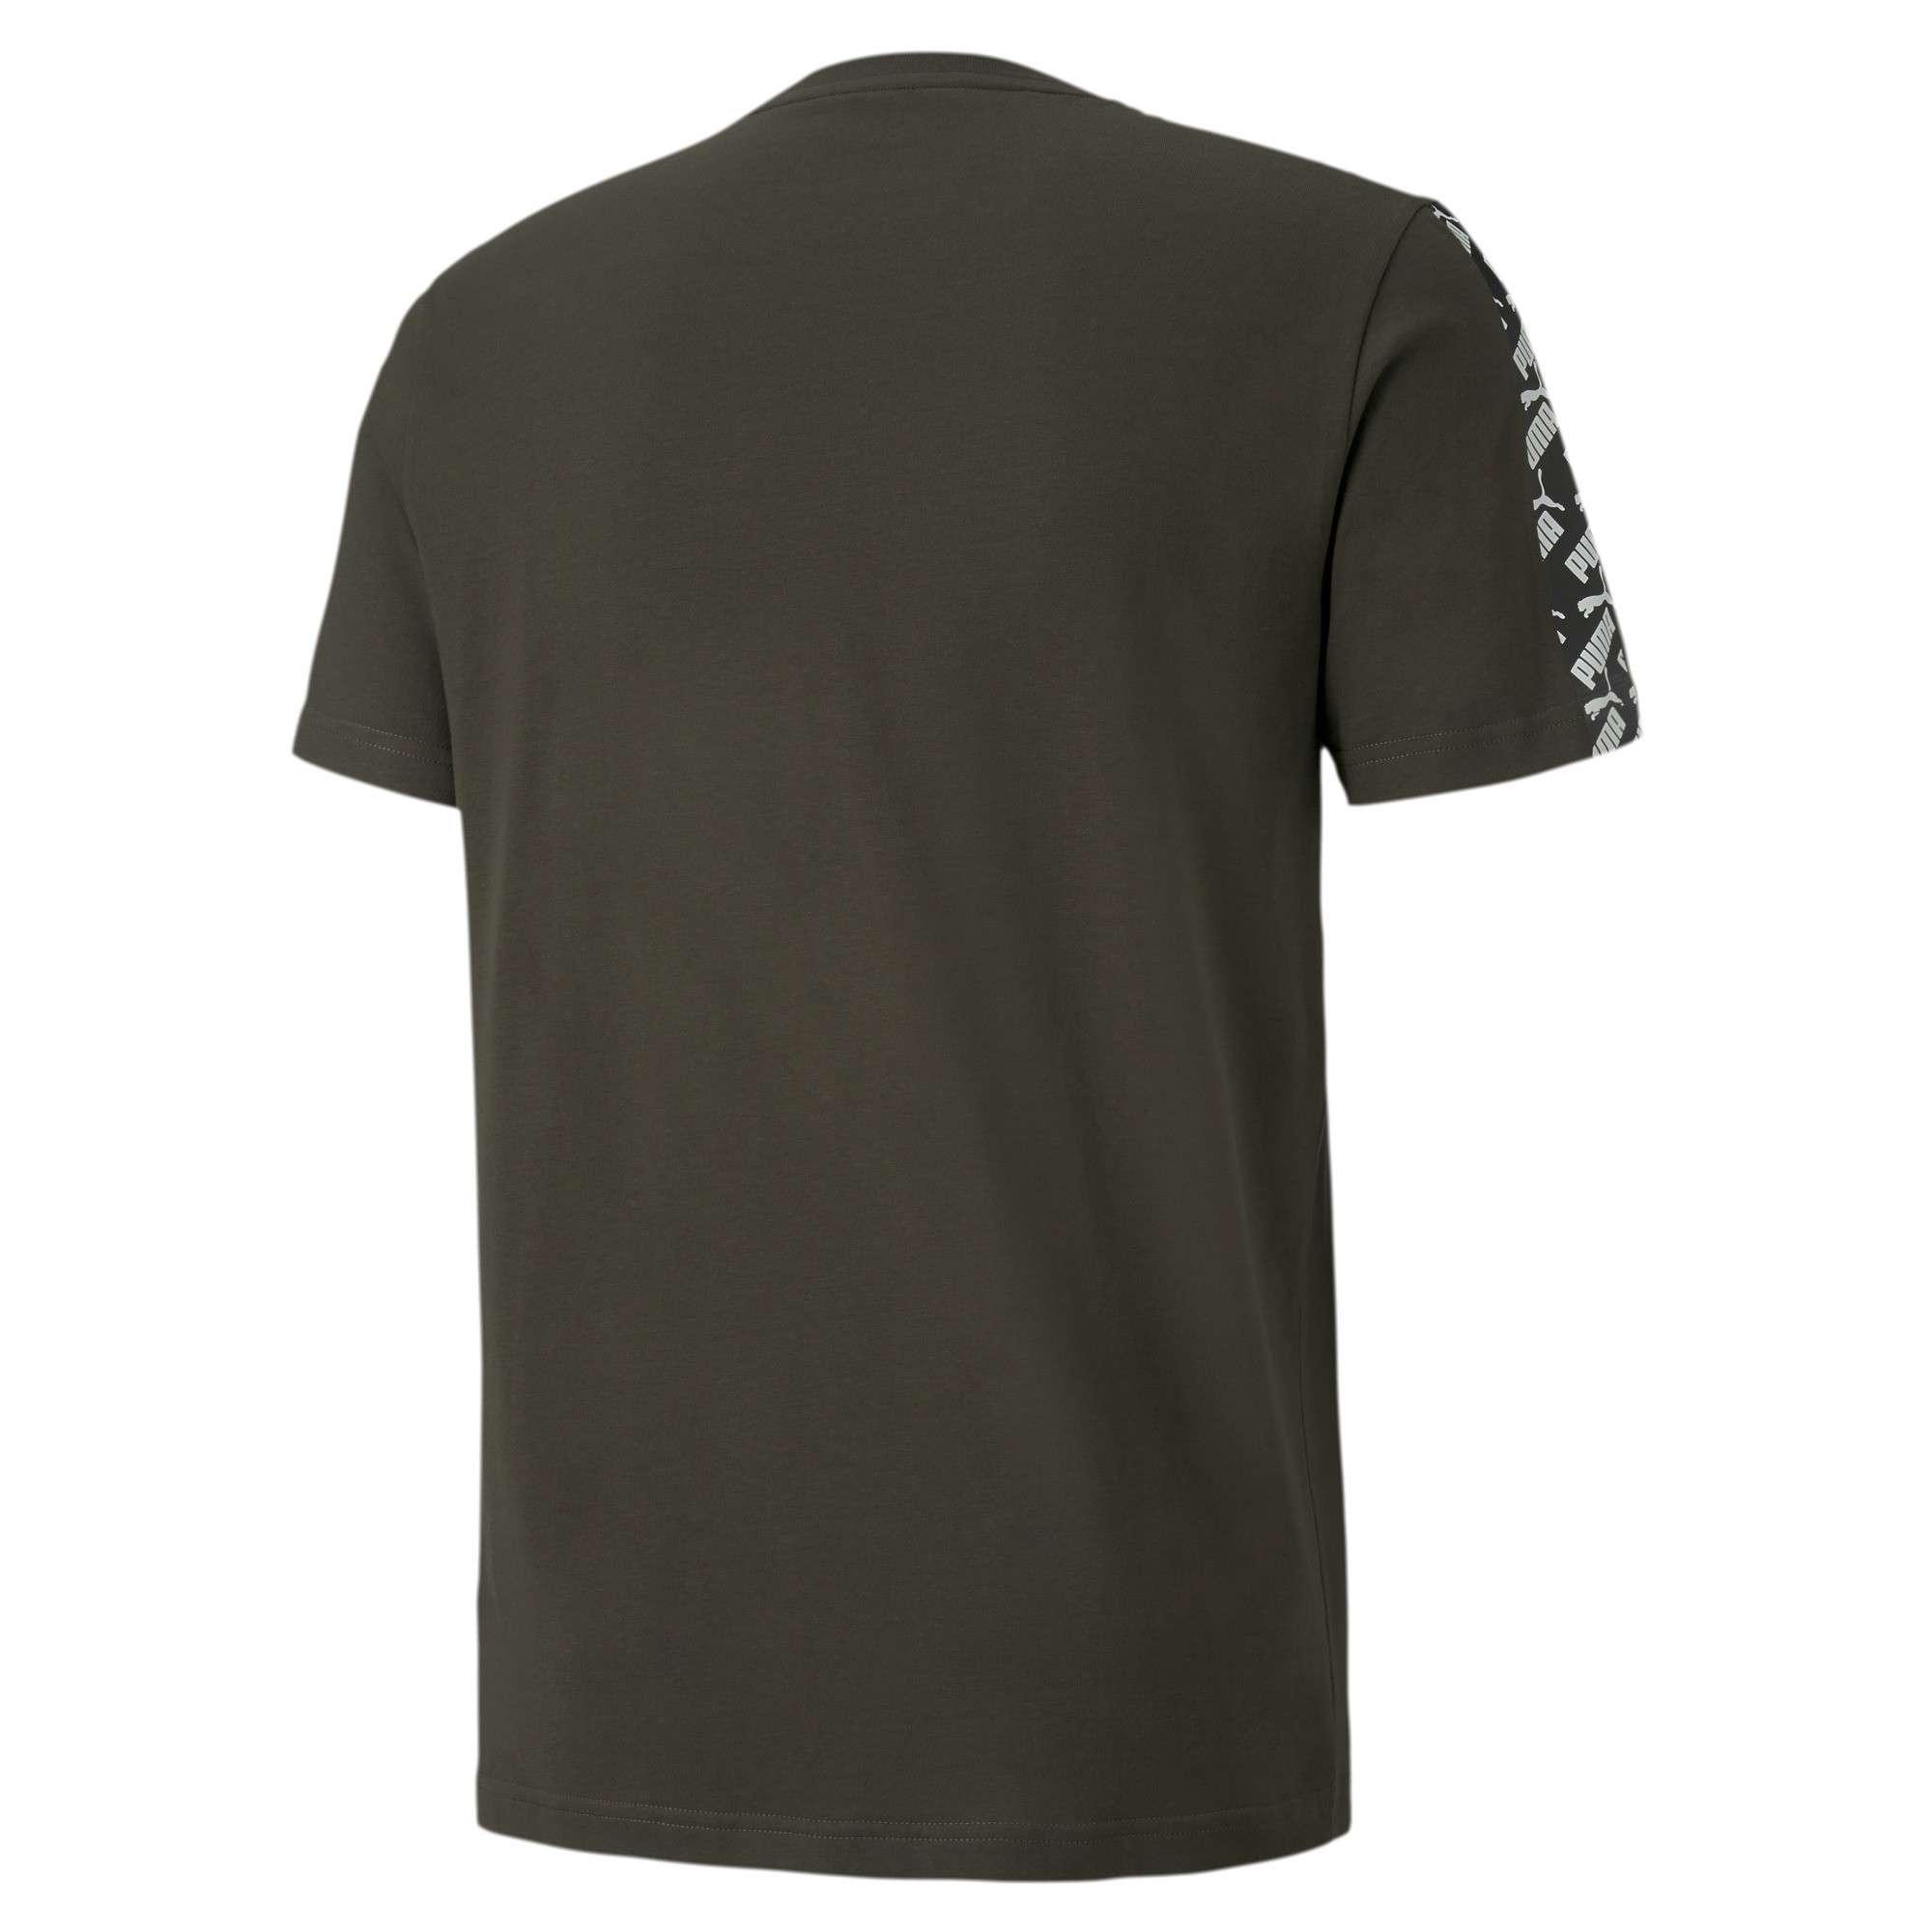 PUMA-Amplified-Men-039-s-Tee-Men-Tee-Basics thumbnail 11